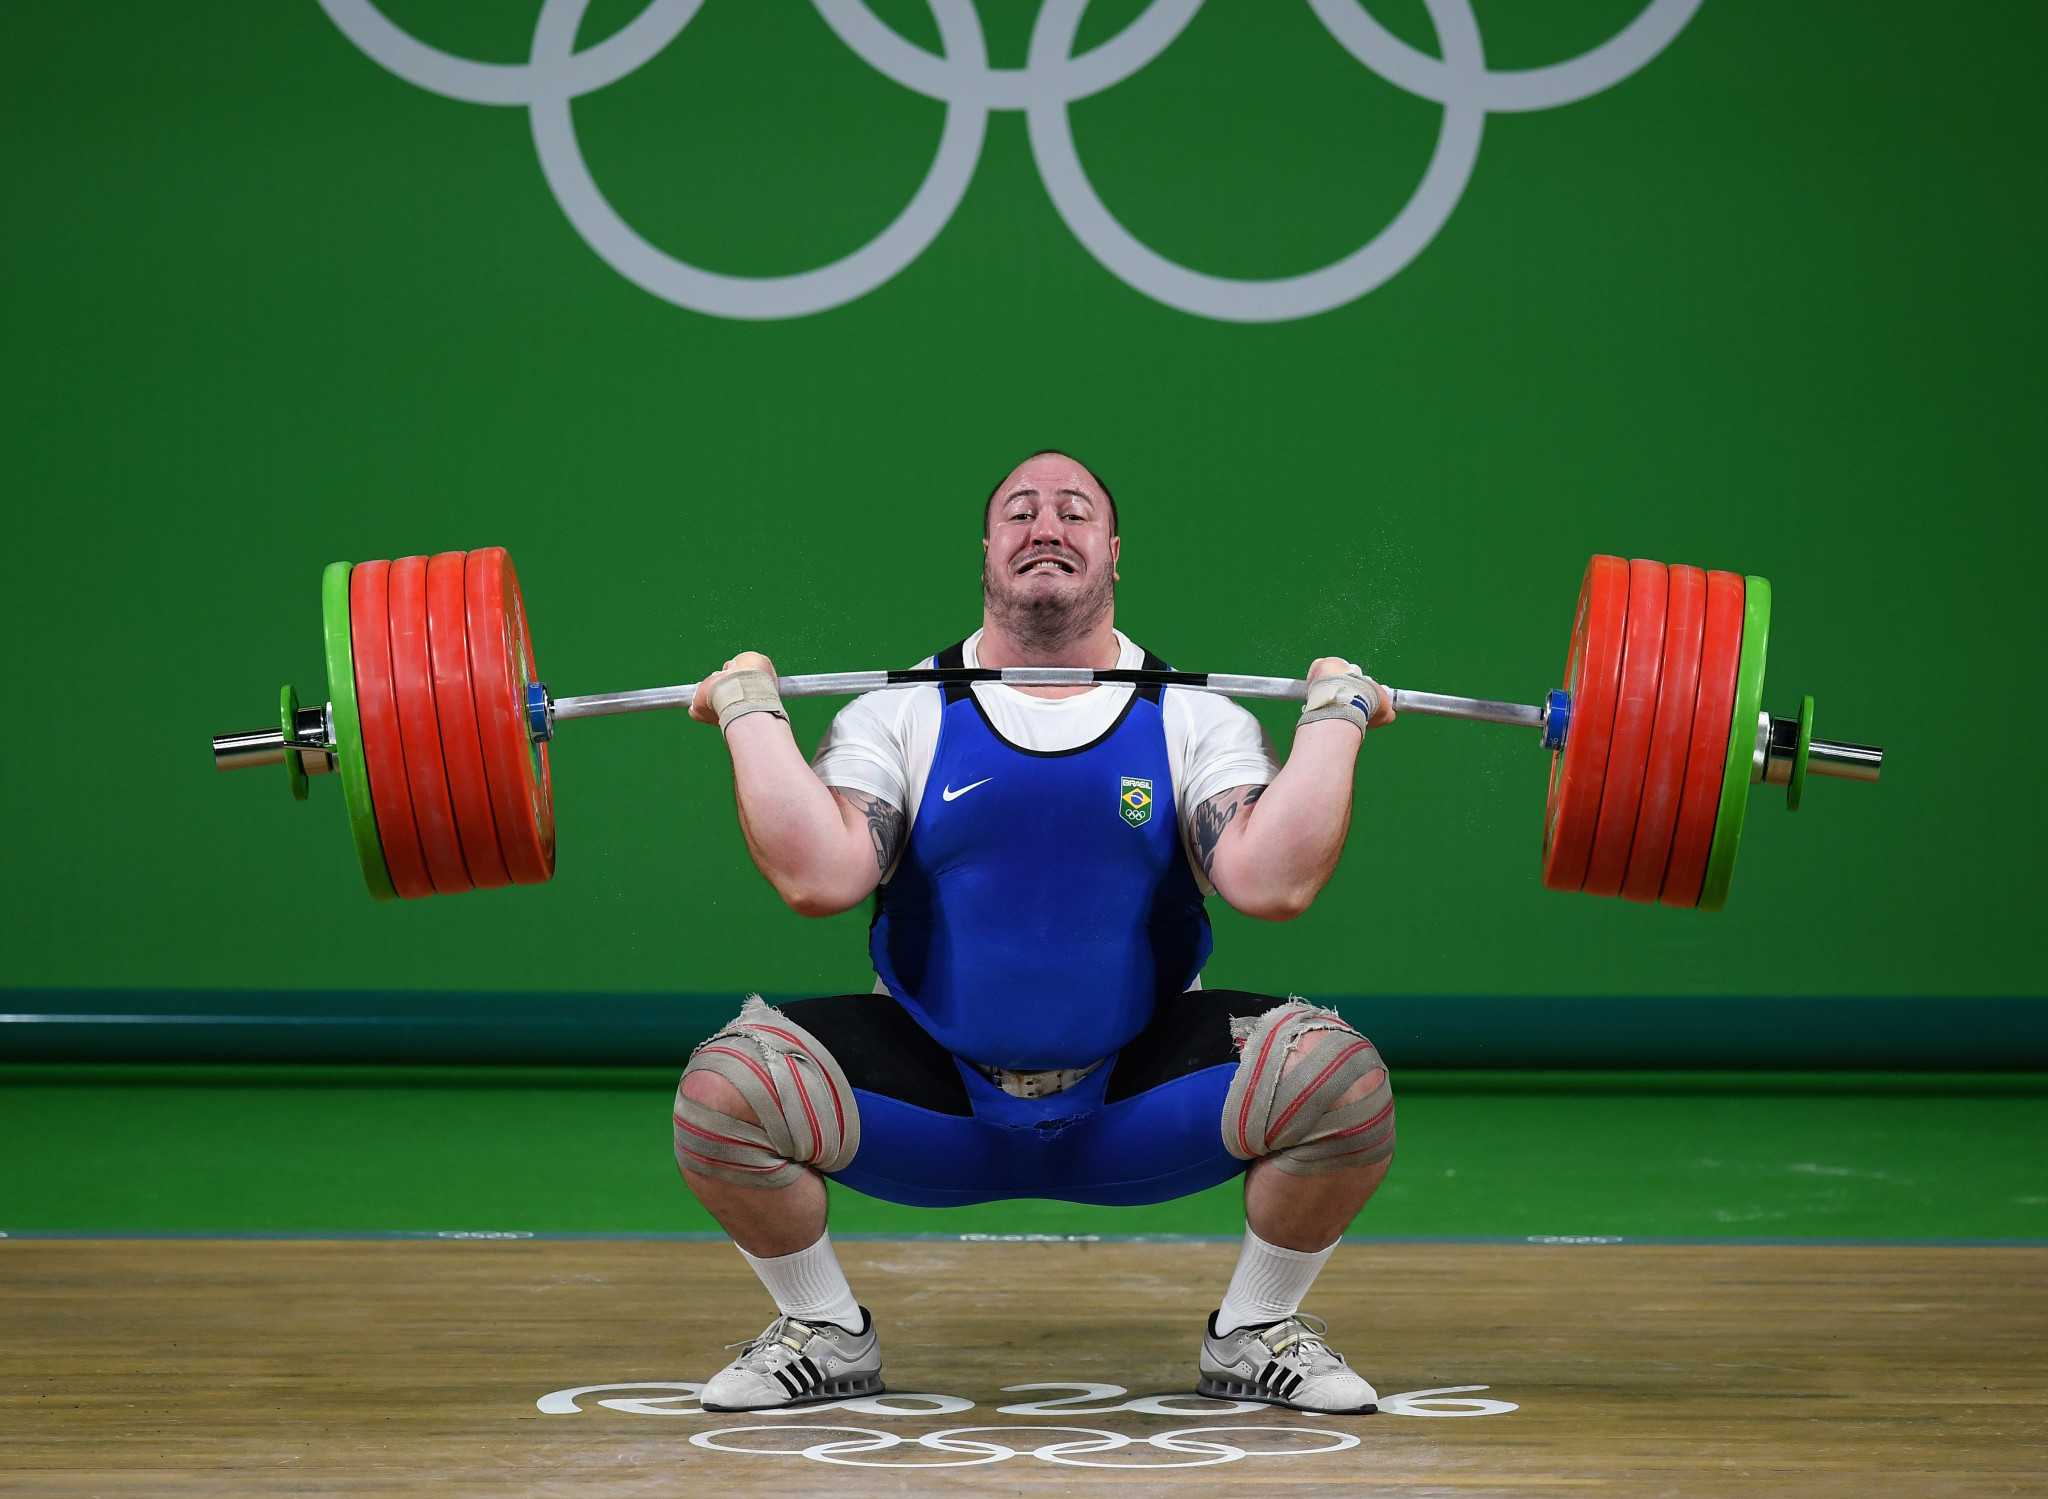 Brazil's Fernando Reis competed at both the London 2012 and Rio 2016 Olympic Games and would have been a medal contender in the 109kg category at Tokyo 2020 ©Getty Images